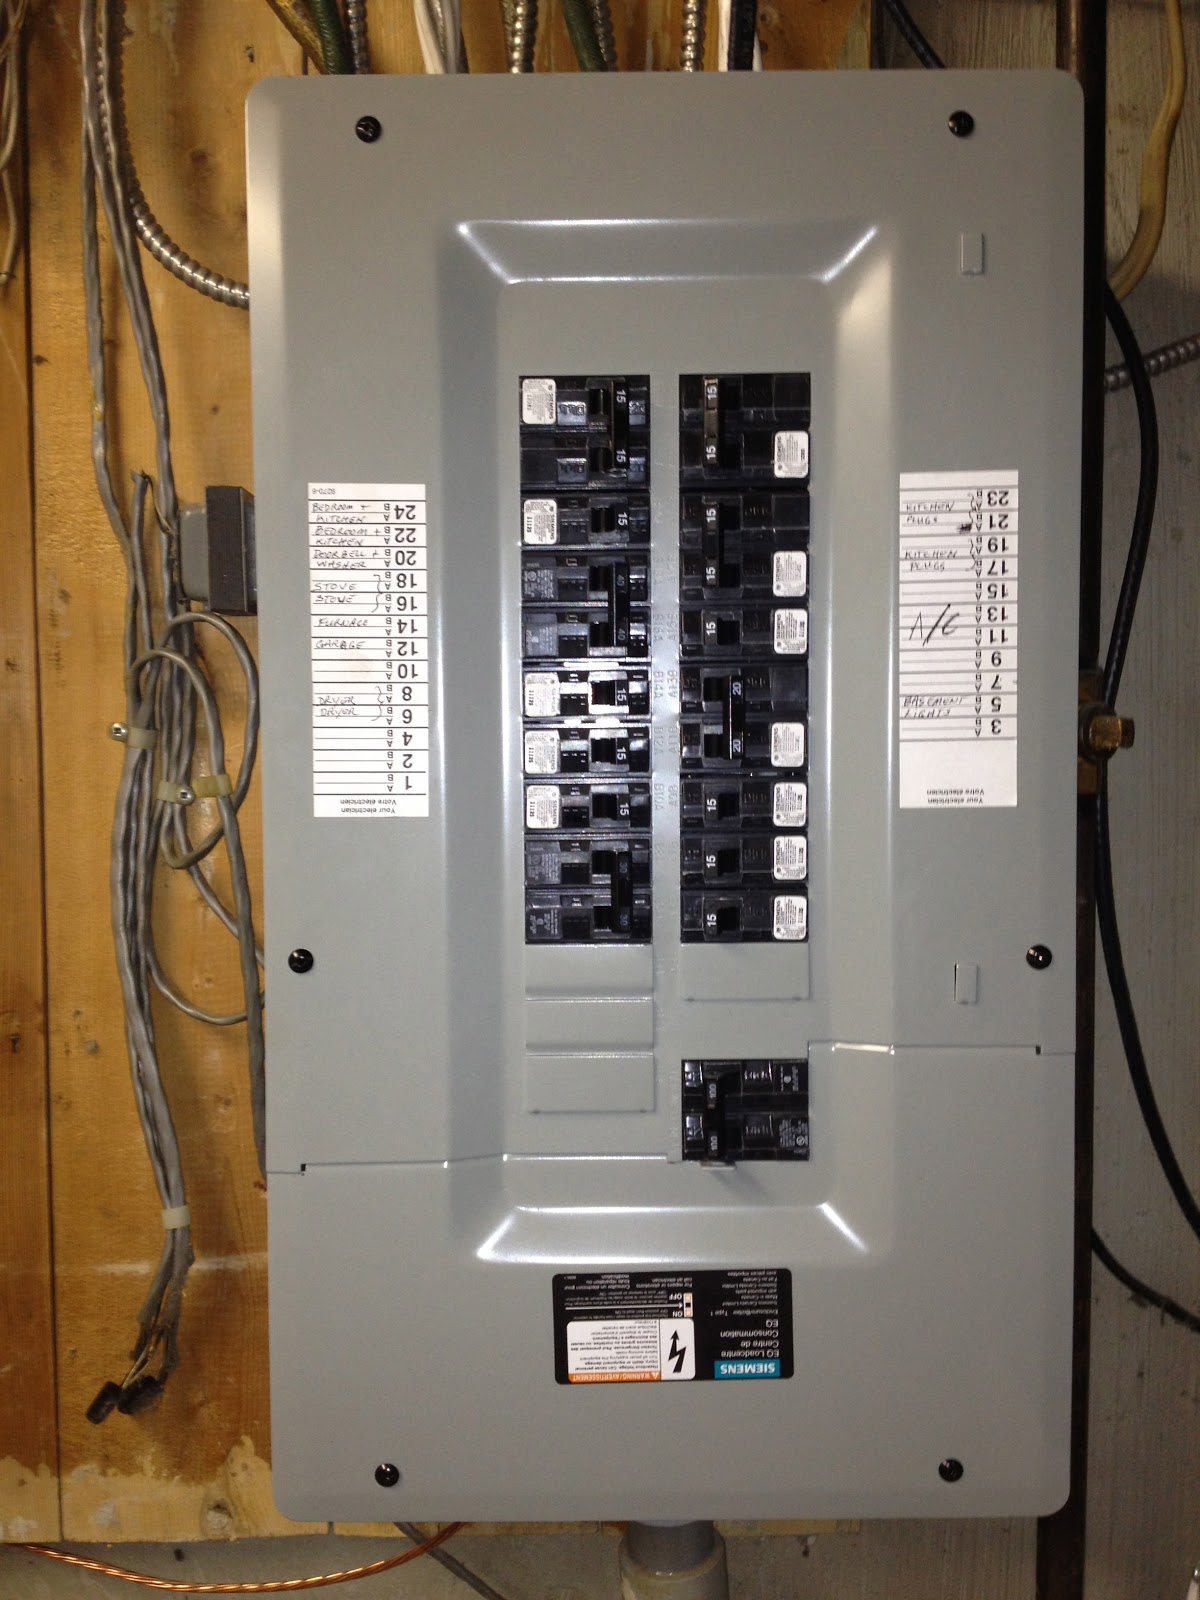 Square D Circuit Breaker Panel Wiring Diagram 7 Way Trailer Ford F250 Box Free Engine Image For User